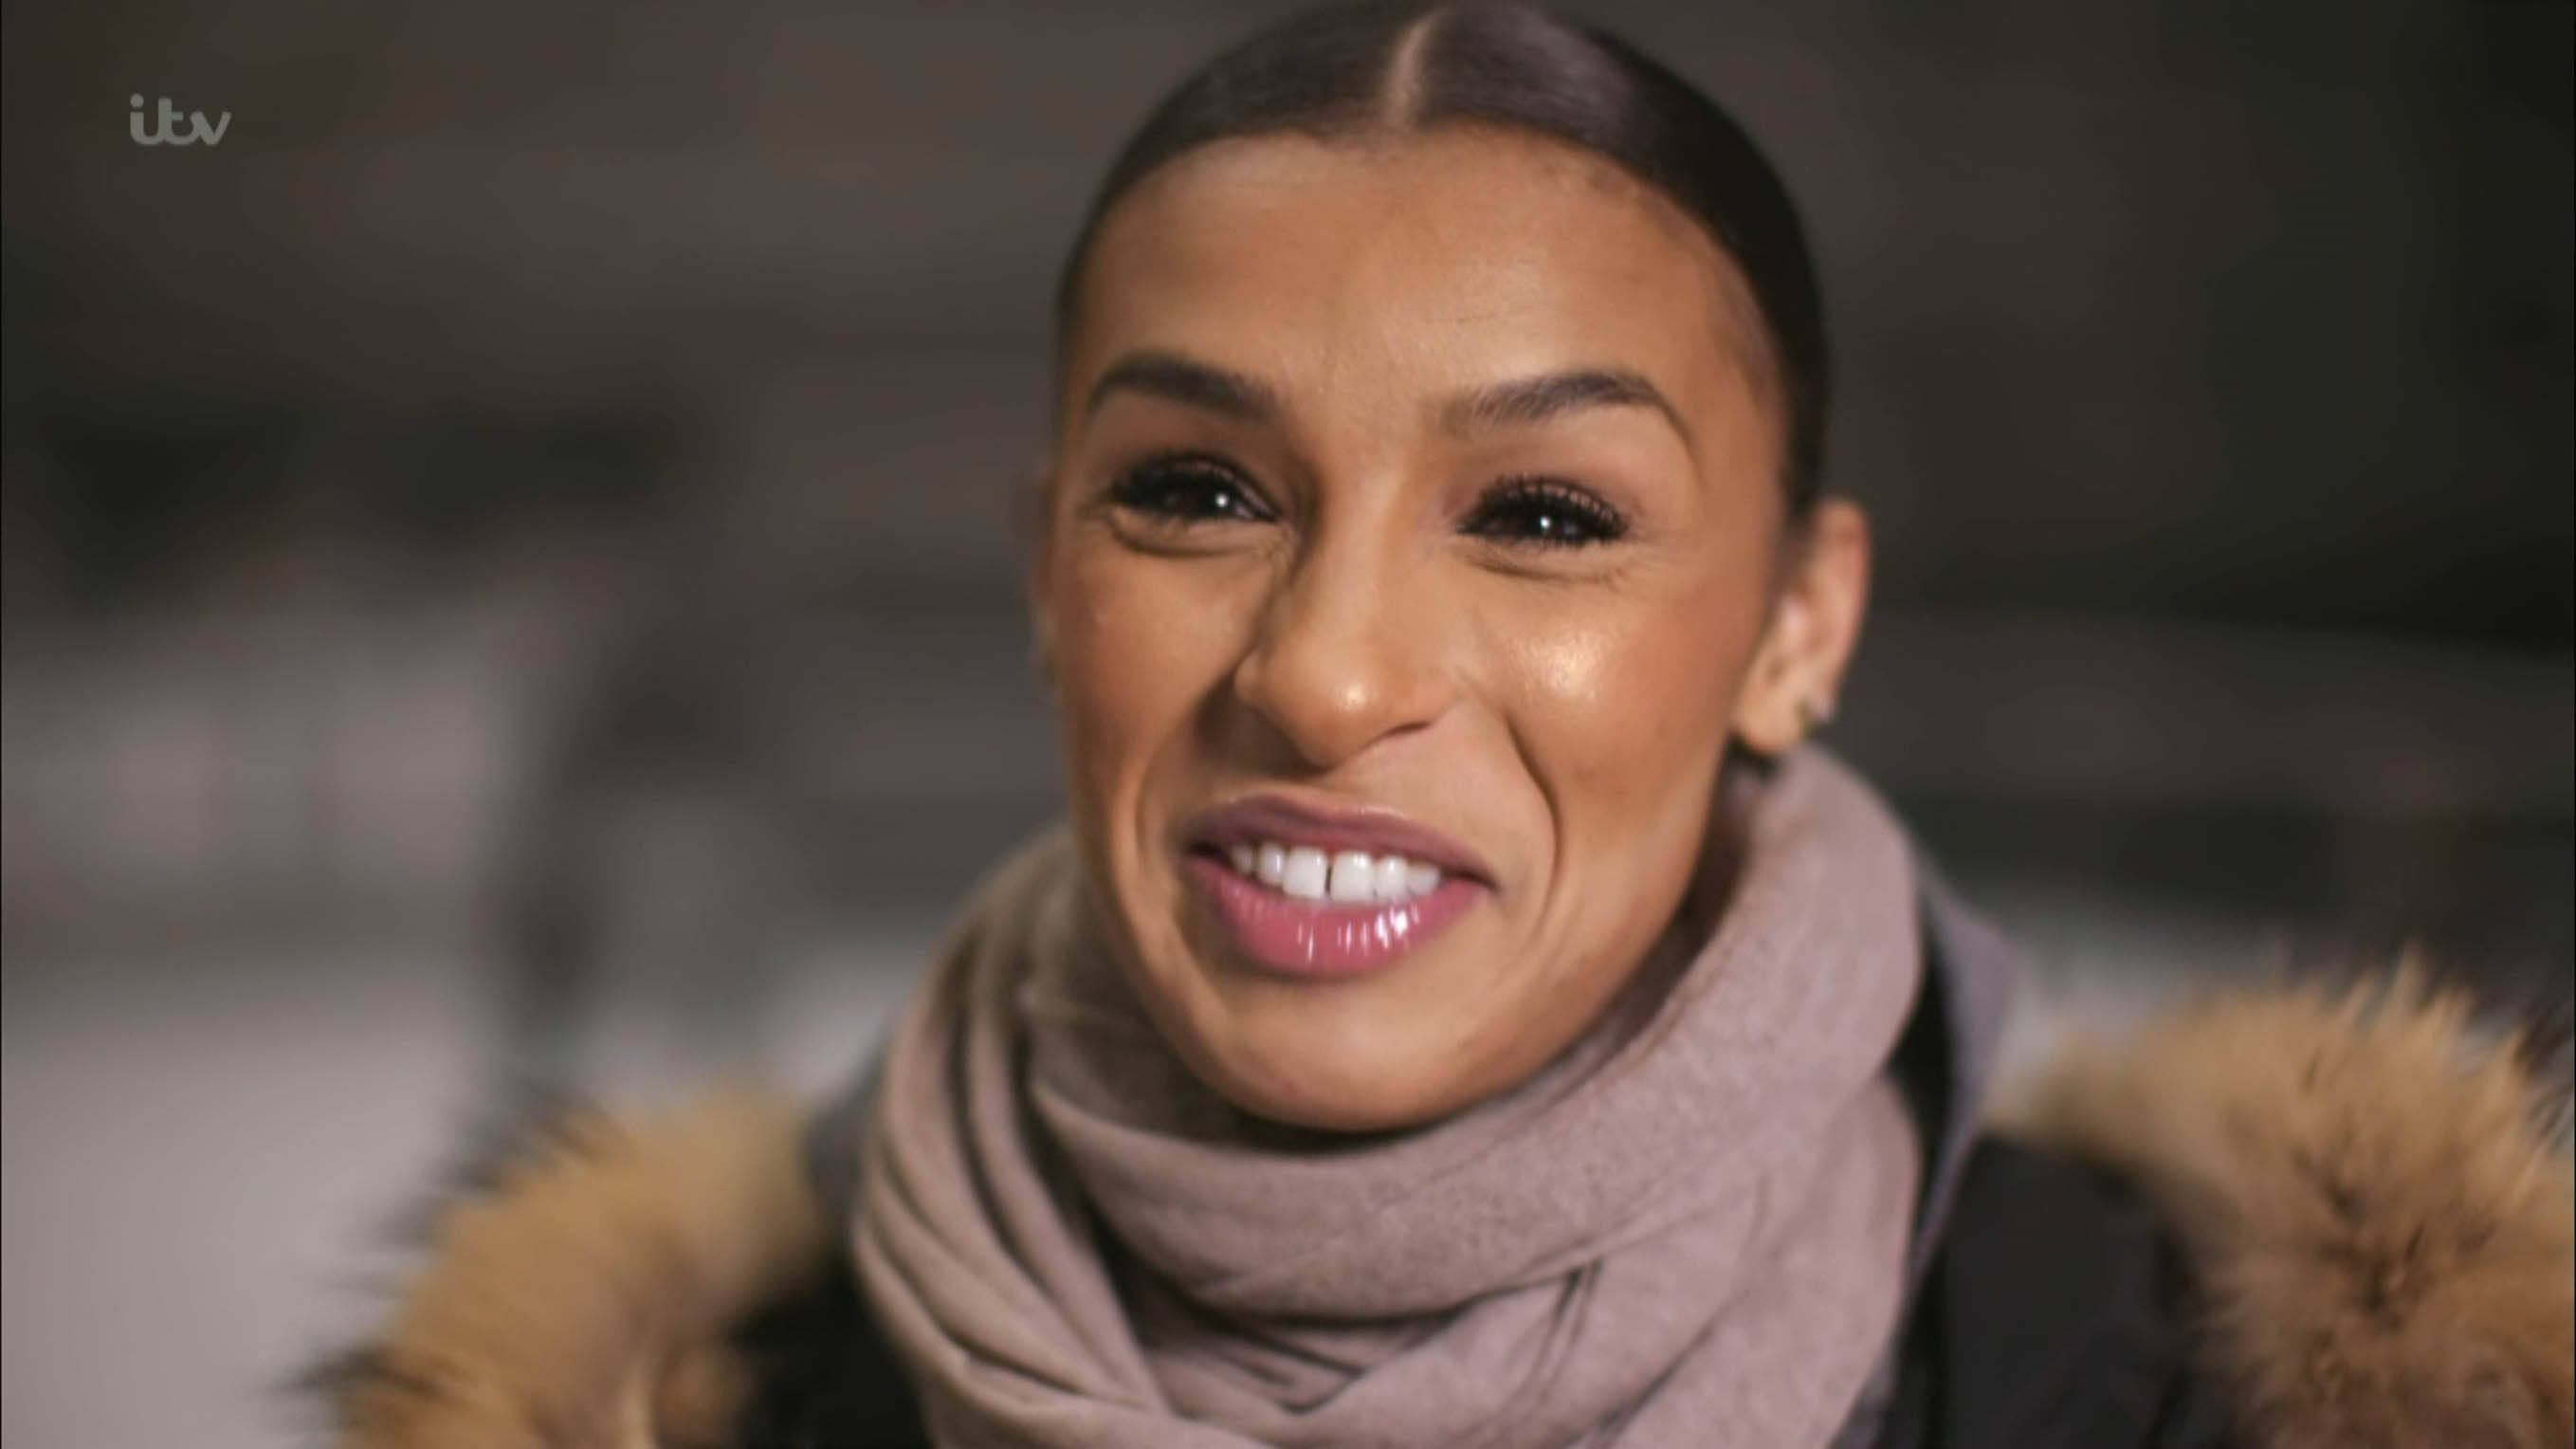 Melody Thornton shoots down Dancing On Ice advantage claims: 'I have performance experience just like everyone else'